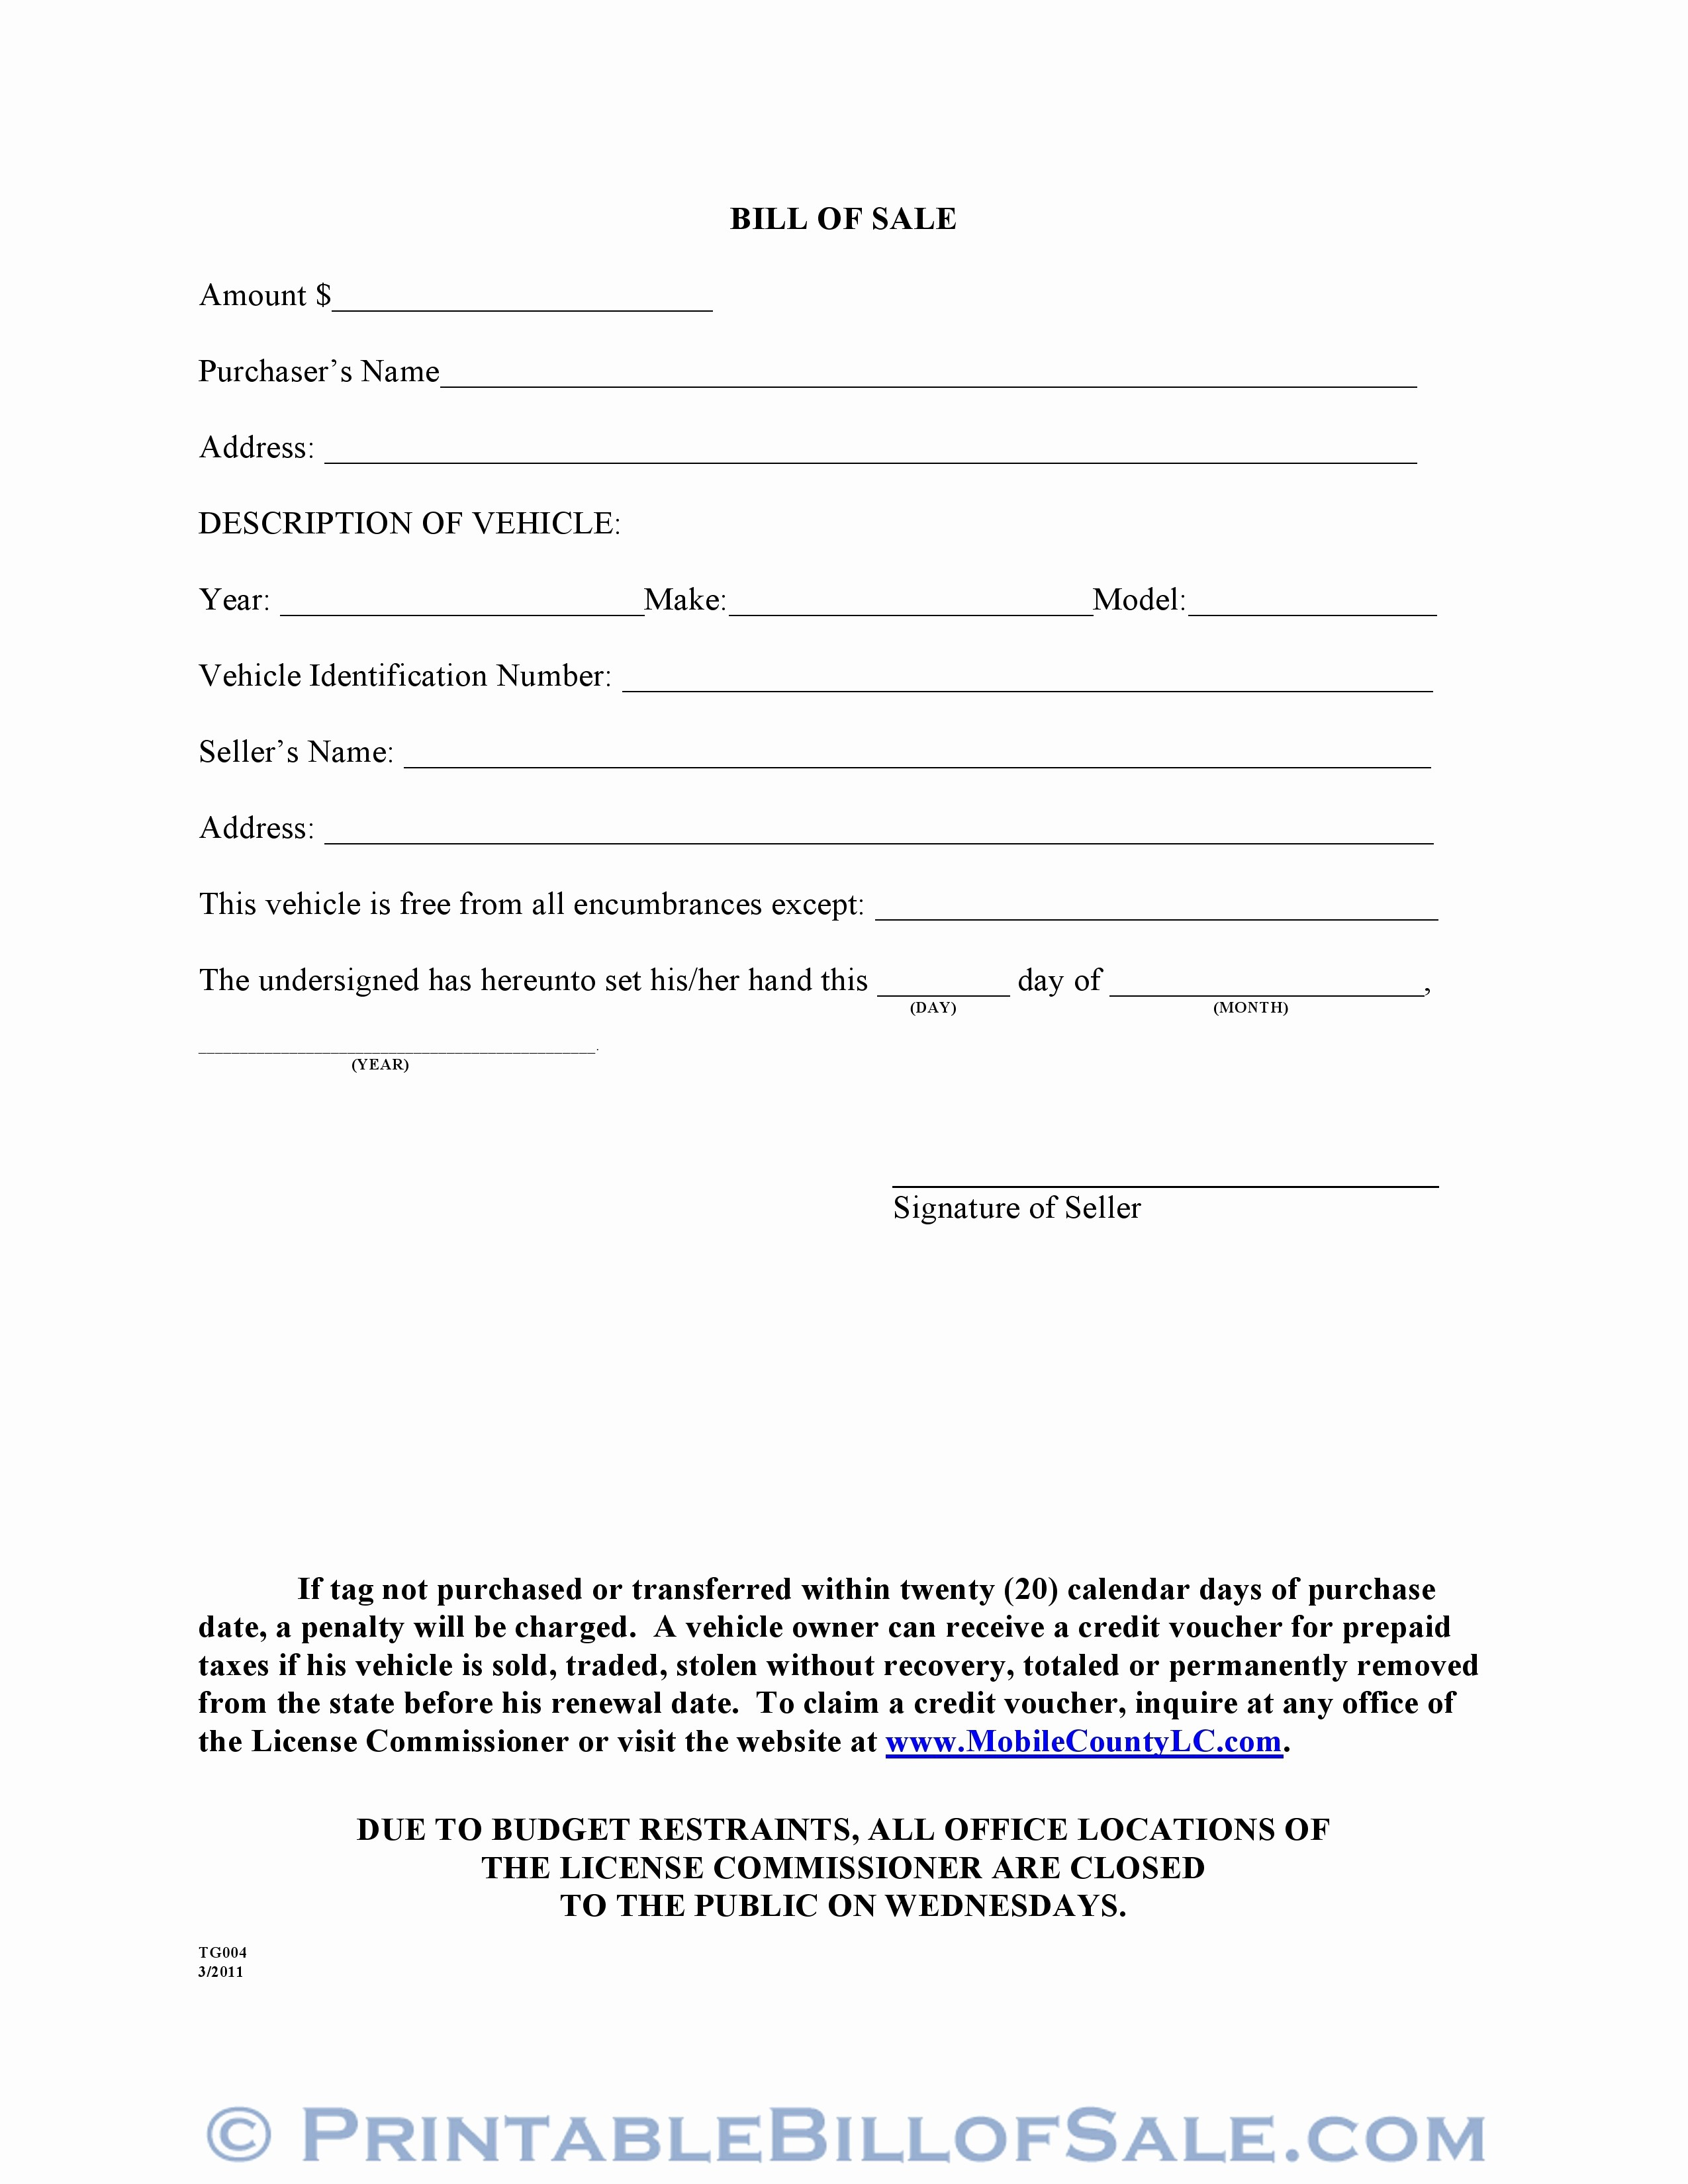 Free Bill Of Sale Auto Unique Free Mobile County Alabama Motor Vehicle Bill Of Sale form